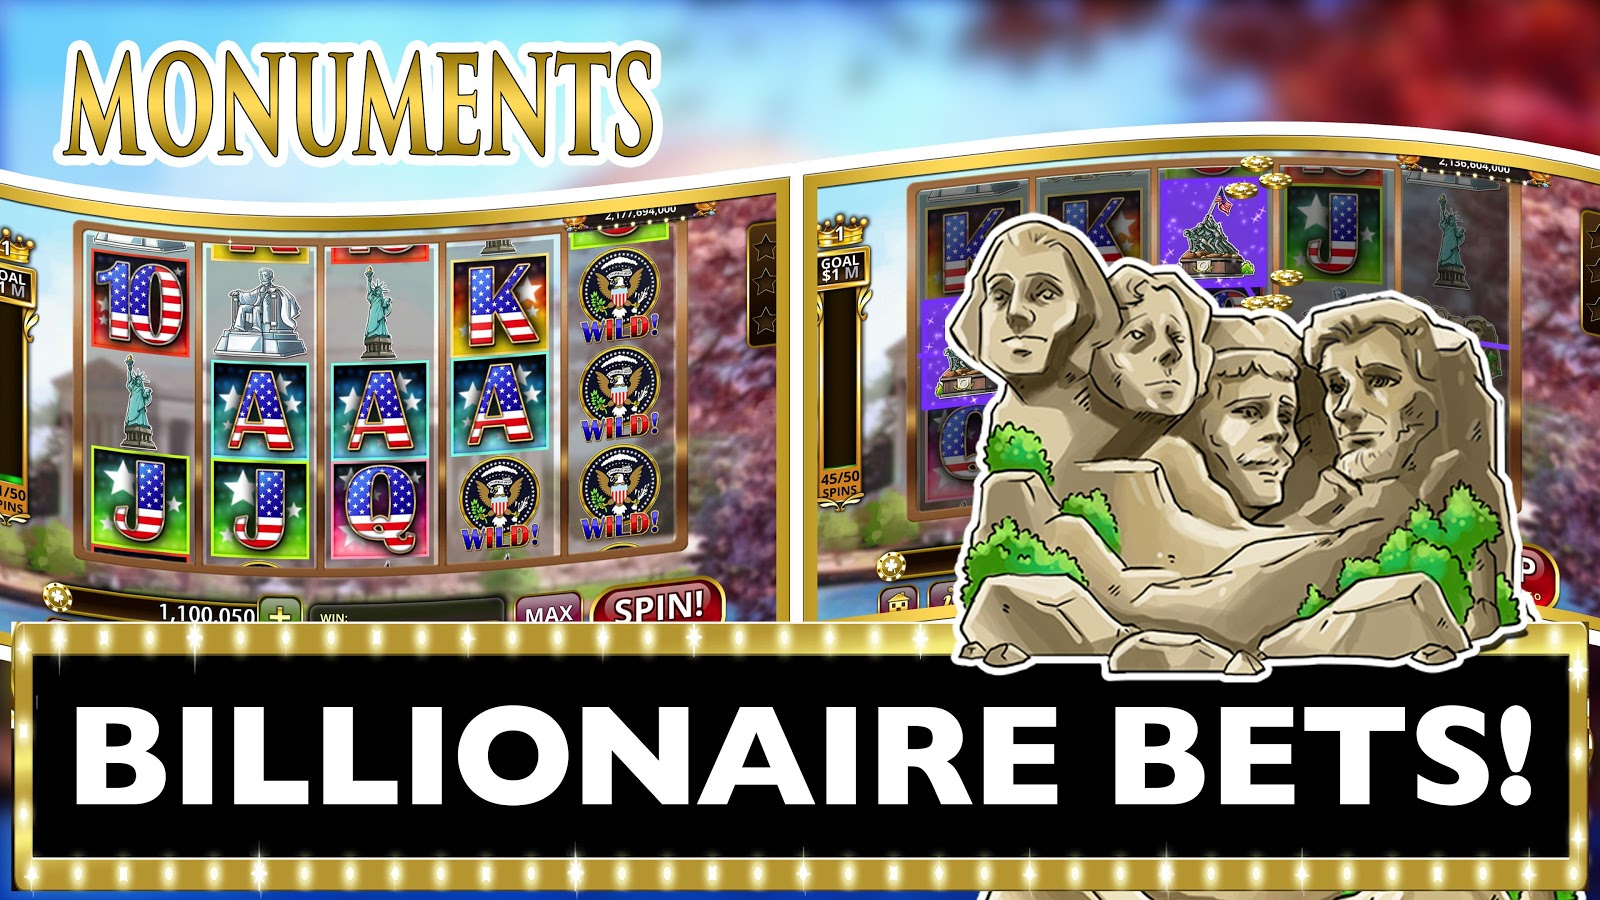 Mr. Billionaire Slot Machine - Play for Free & Win for Real